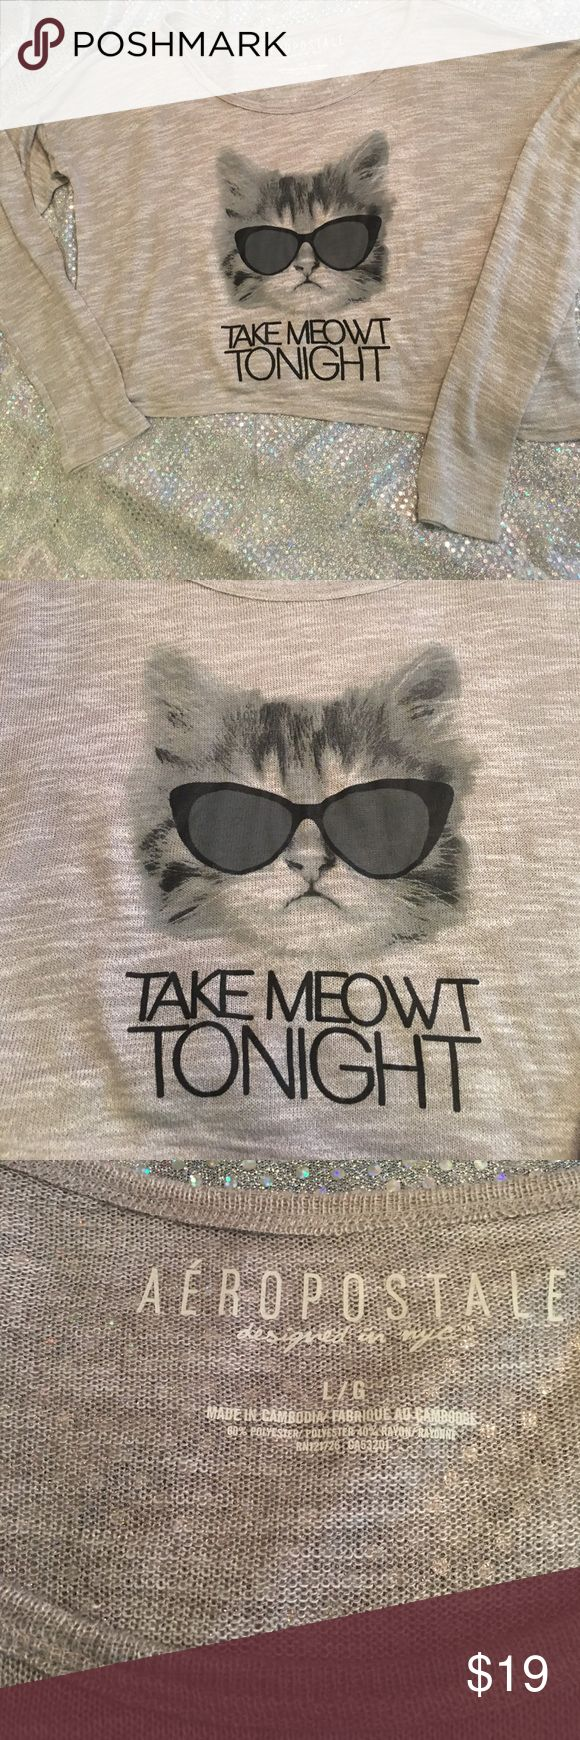 """A Very Cute Novelty Cat long Crop """"Take Meowt """" Aeropostale Long Sleeve thin crop top Tee that says """"TAKE MEOWT TONIGHT"""" ! Very cute cat face with glasses on the front. Size is Large Aeropostale Tops Crop Tops"""